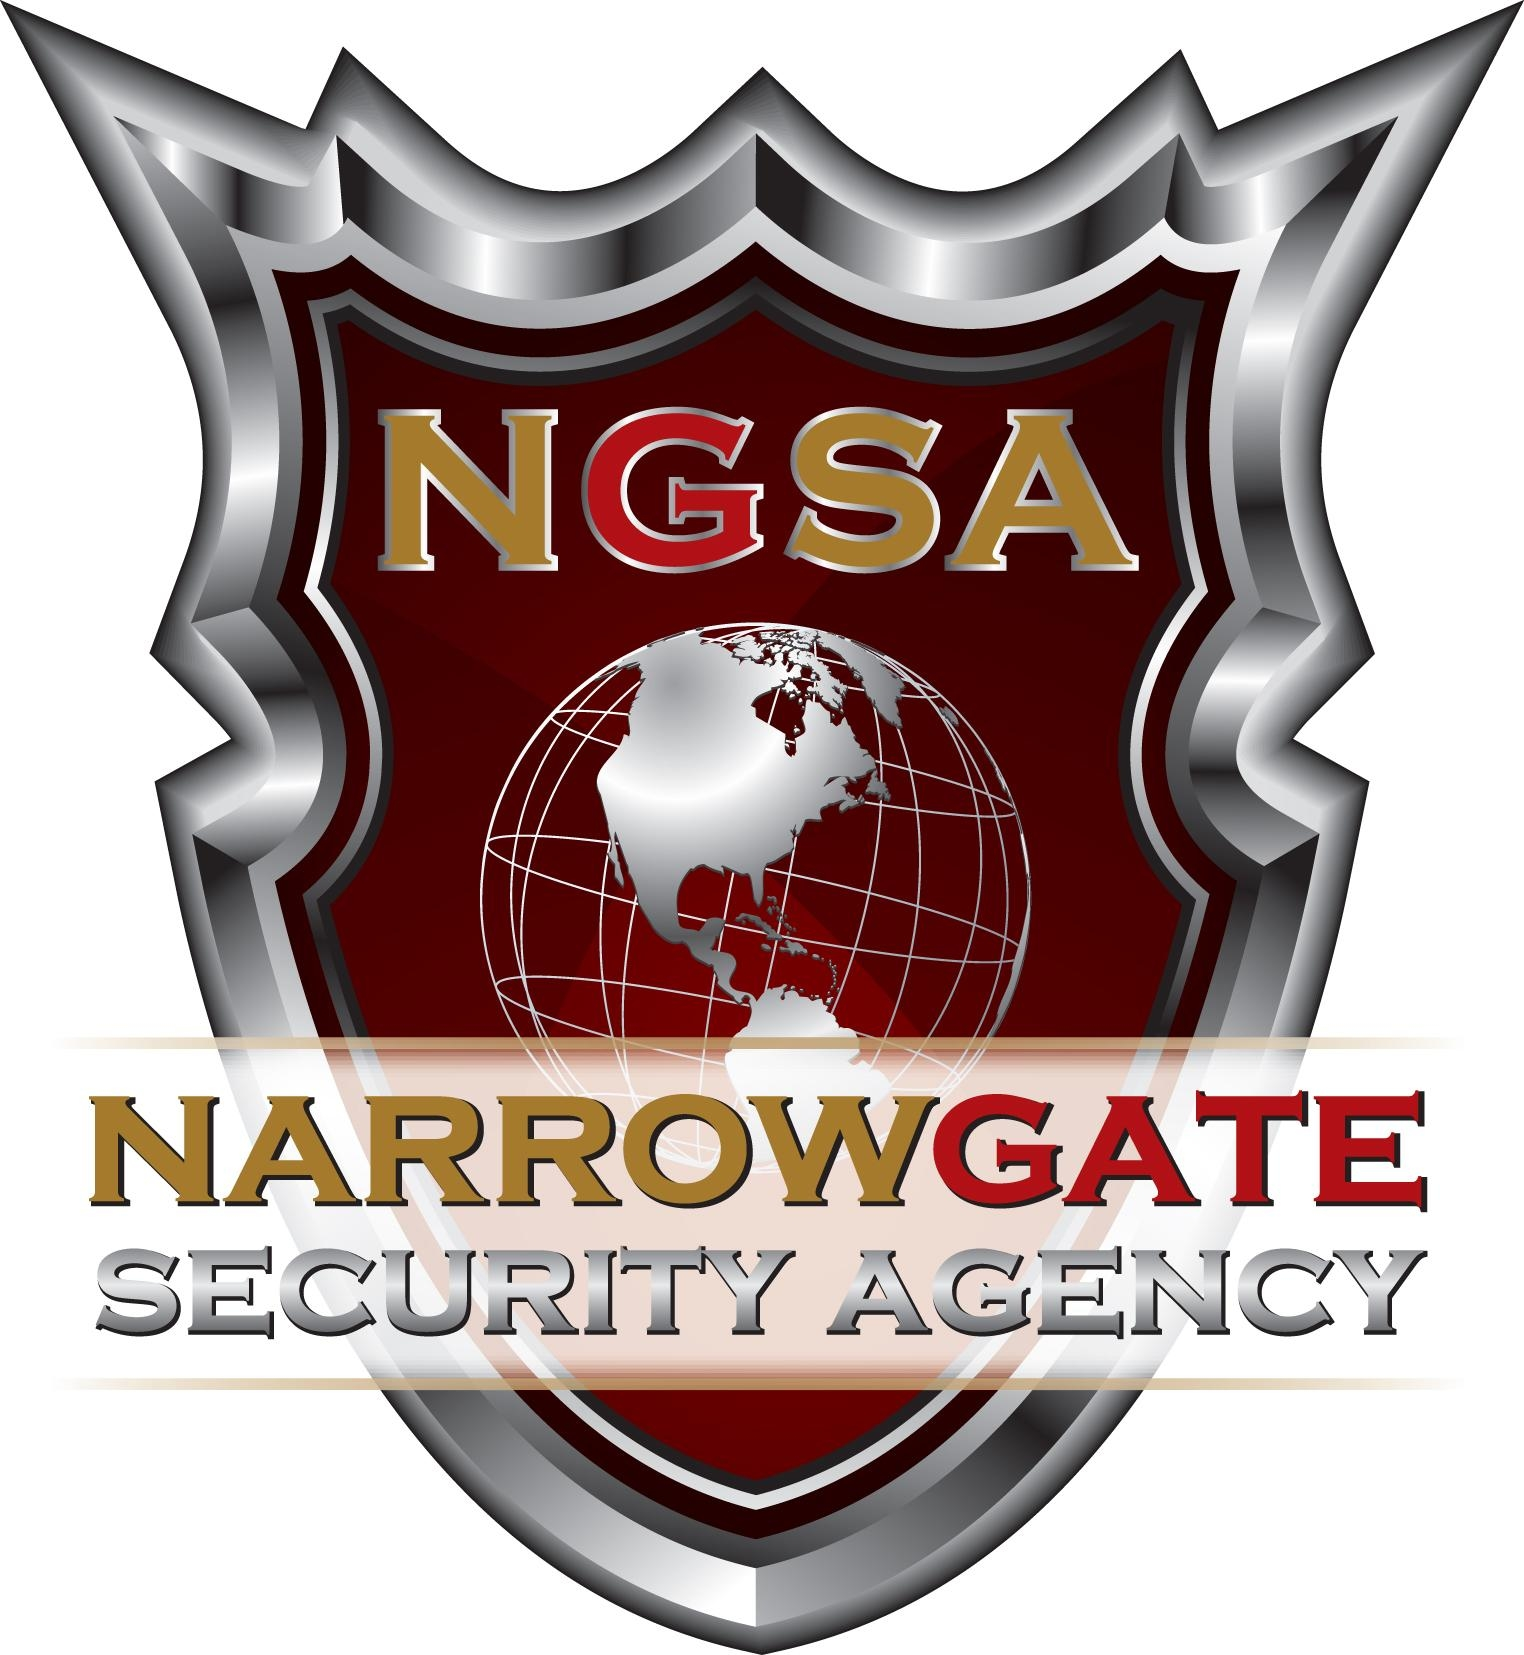 Narrow Gate Security Agency